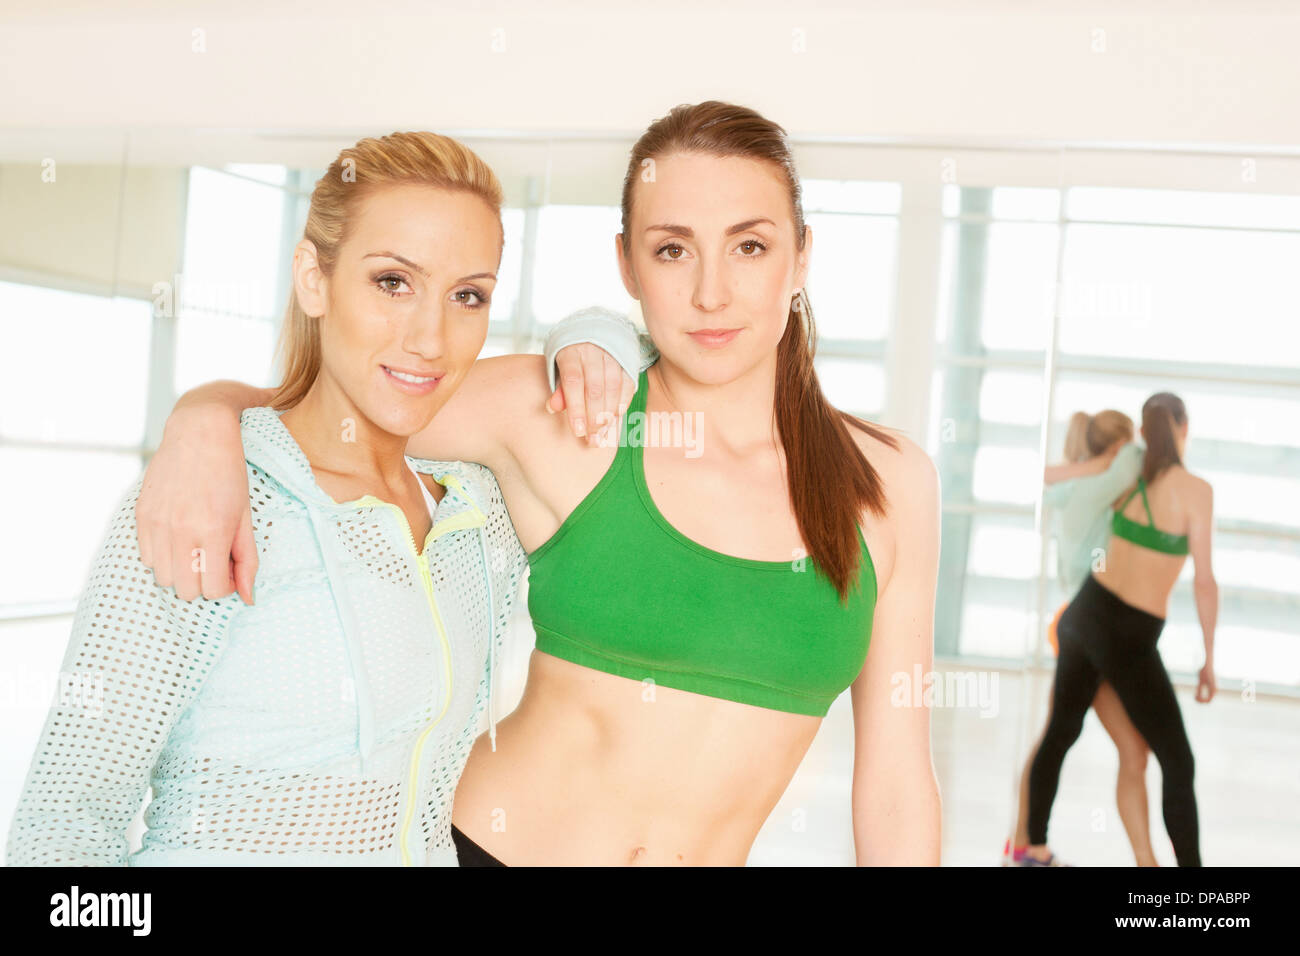 Women standing in gymnasium with arm around - Stock Image